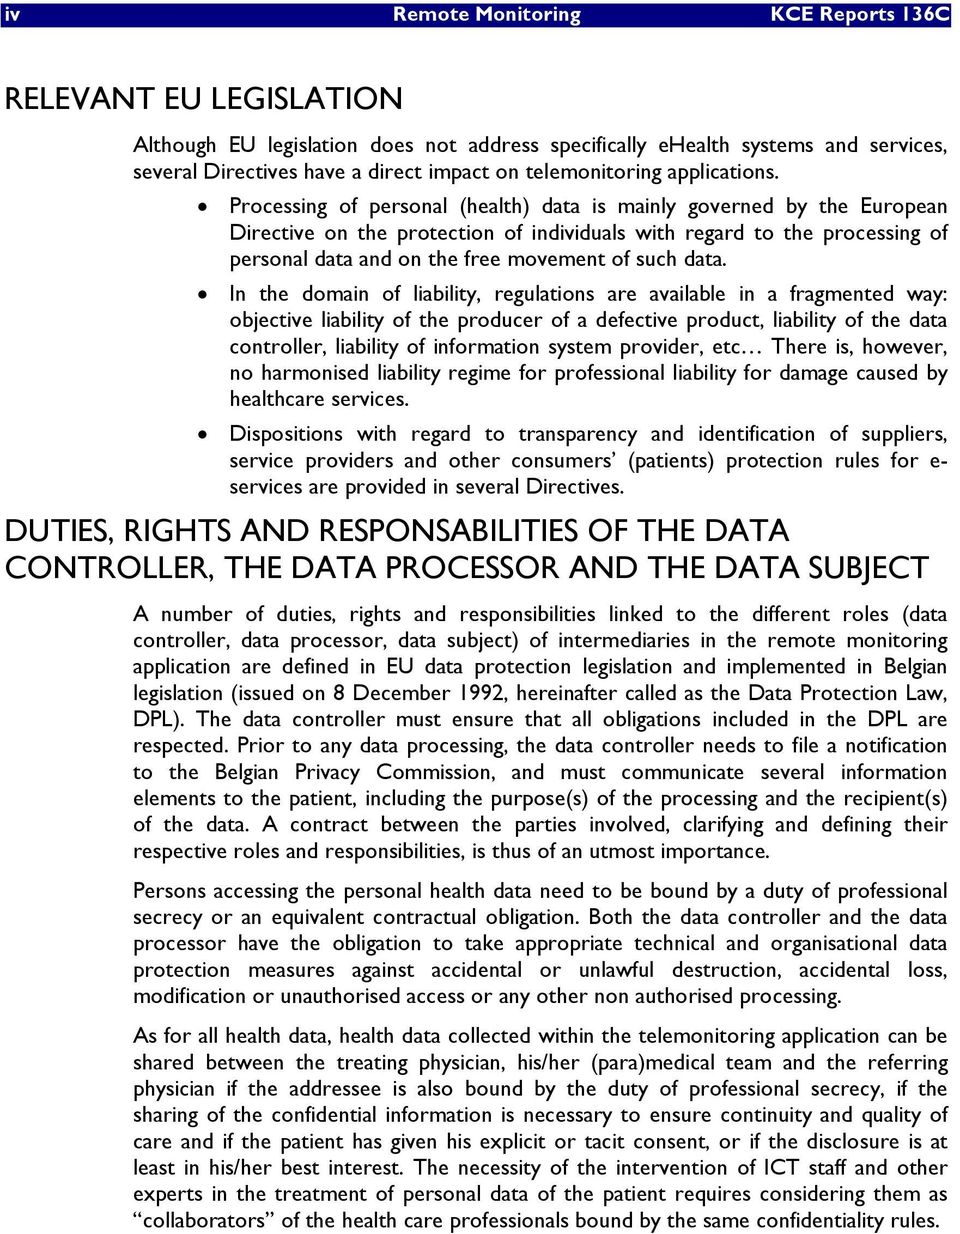 Processing of personal (health) data is mainly governed by the European Directive on the protection of individuals with regard to the processing of personal data and on the free movement of such data.